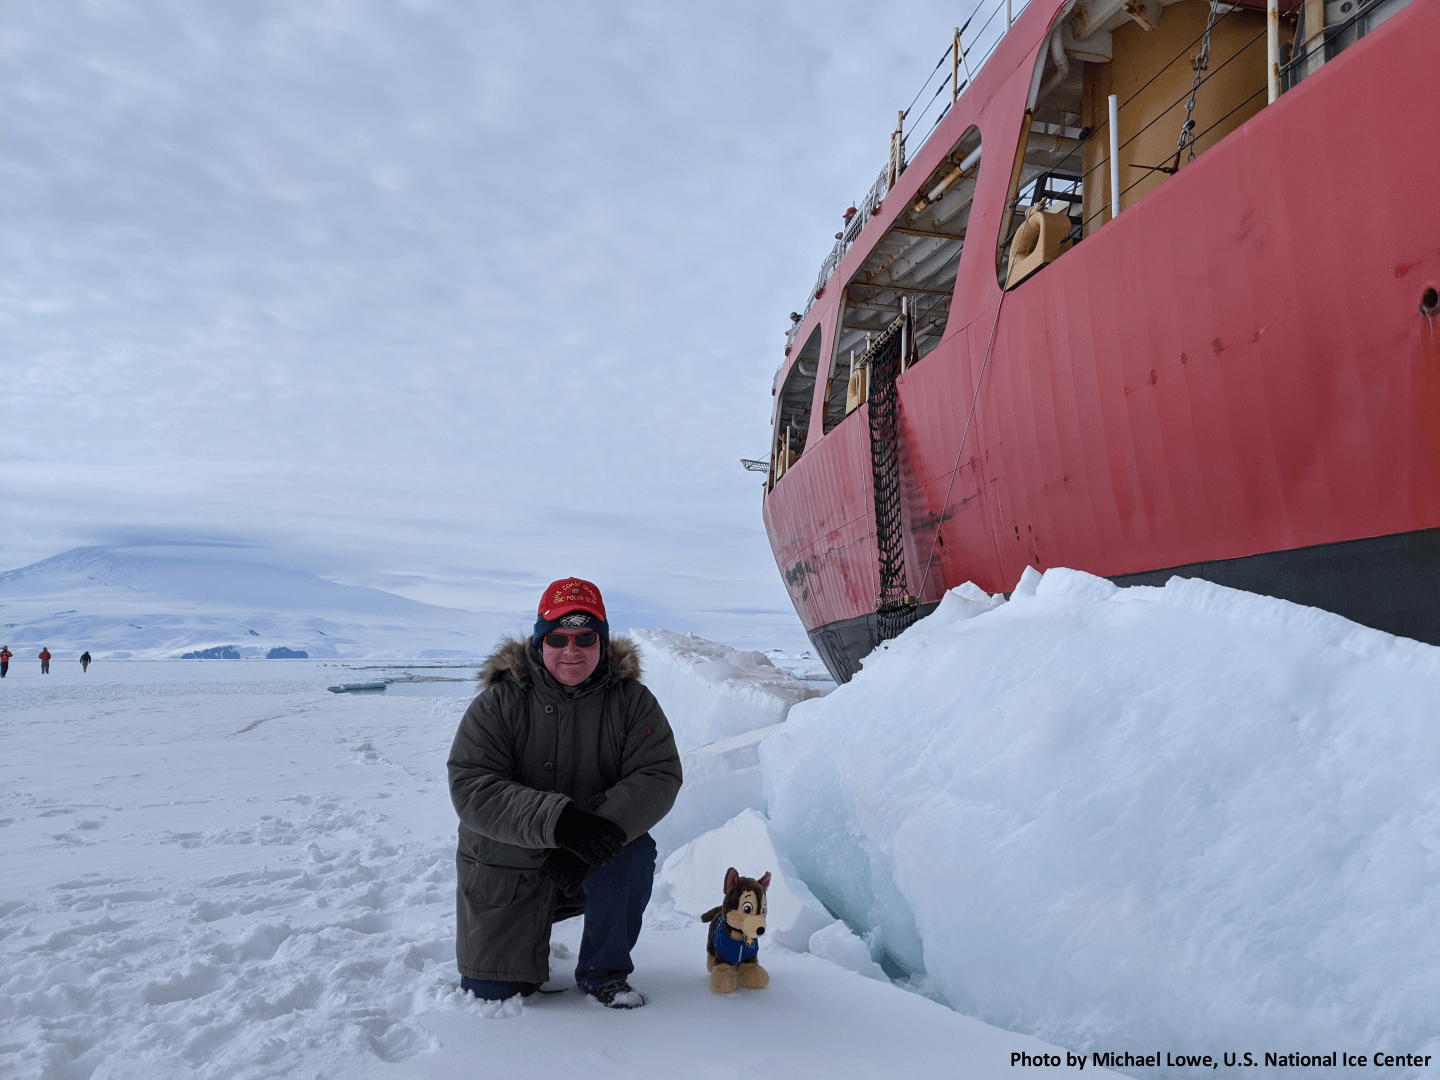 Senior Analyst Mike Lowe on the ice alongside USCGC Polar Star during Deep Freeze 2020